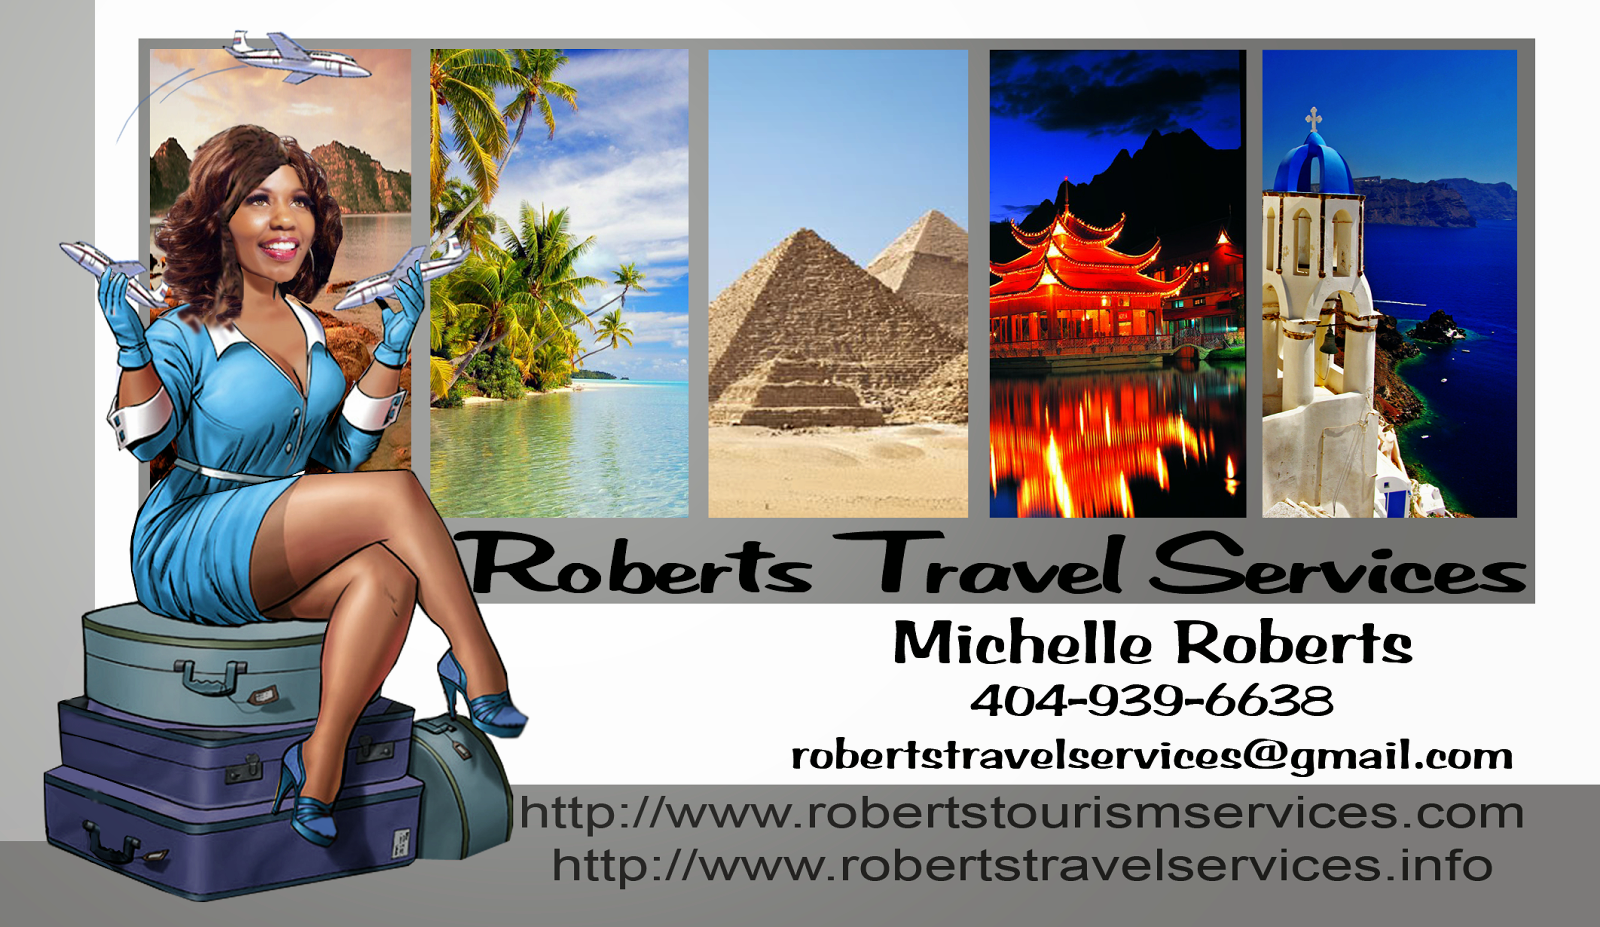 Roberts Travel Services